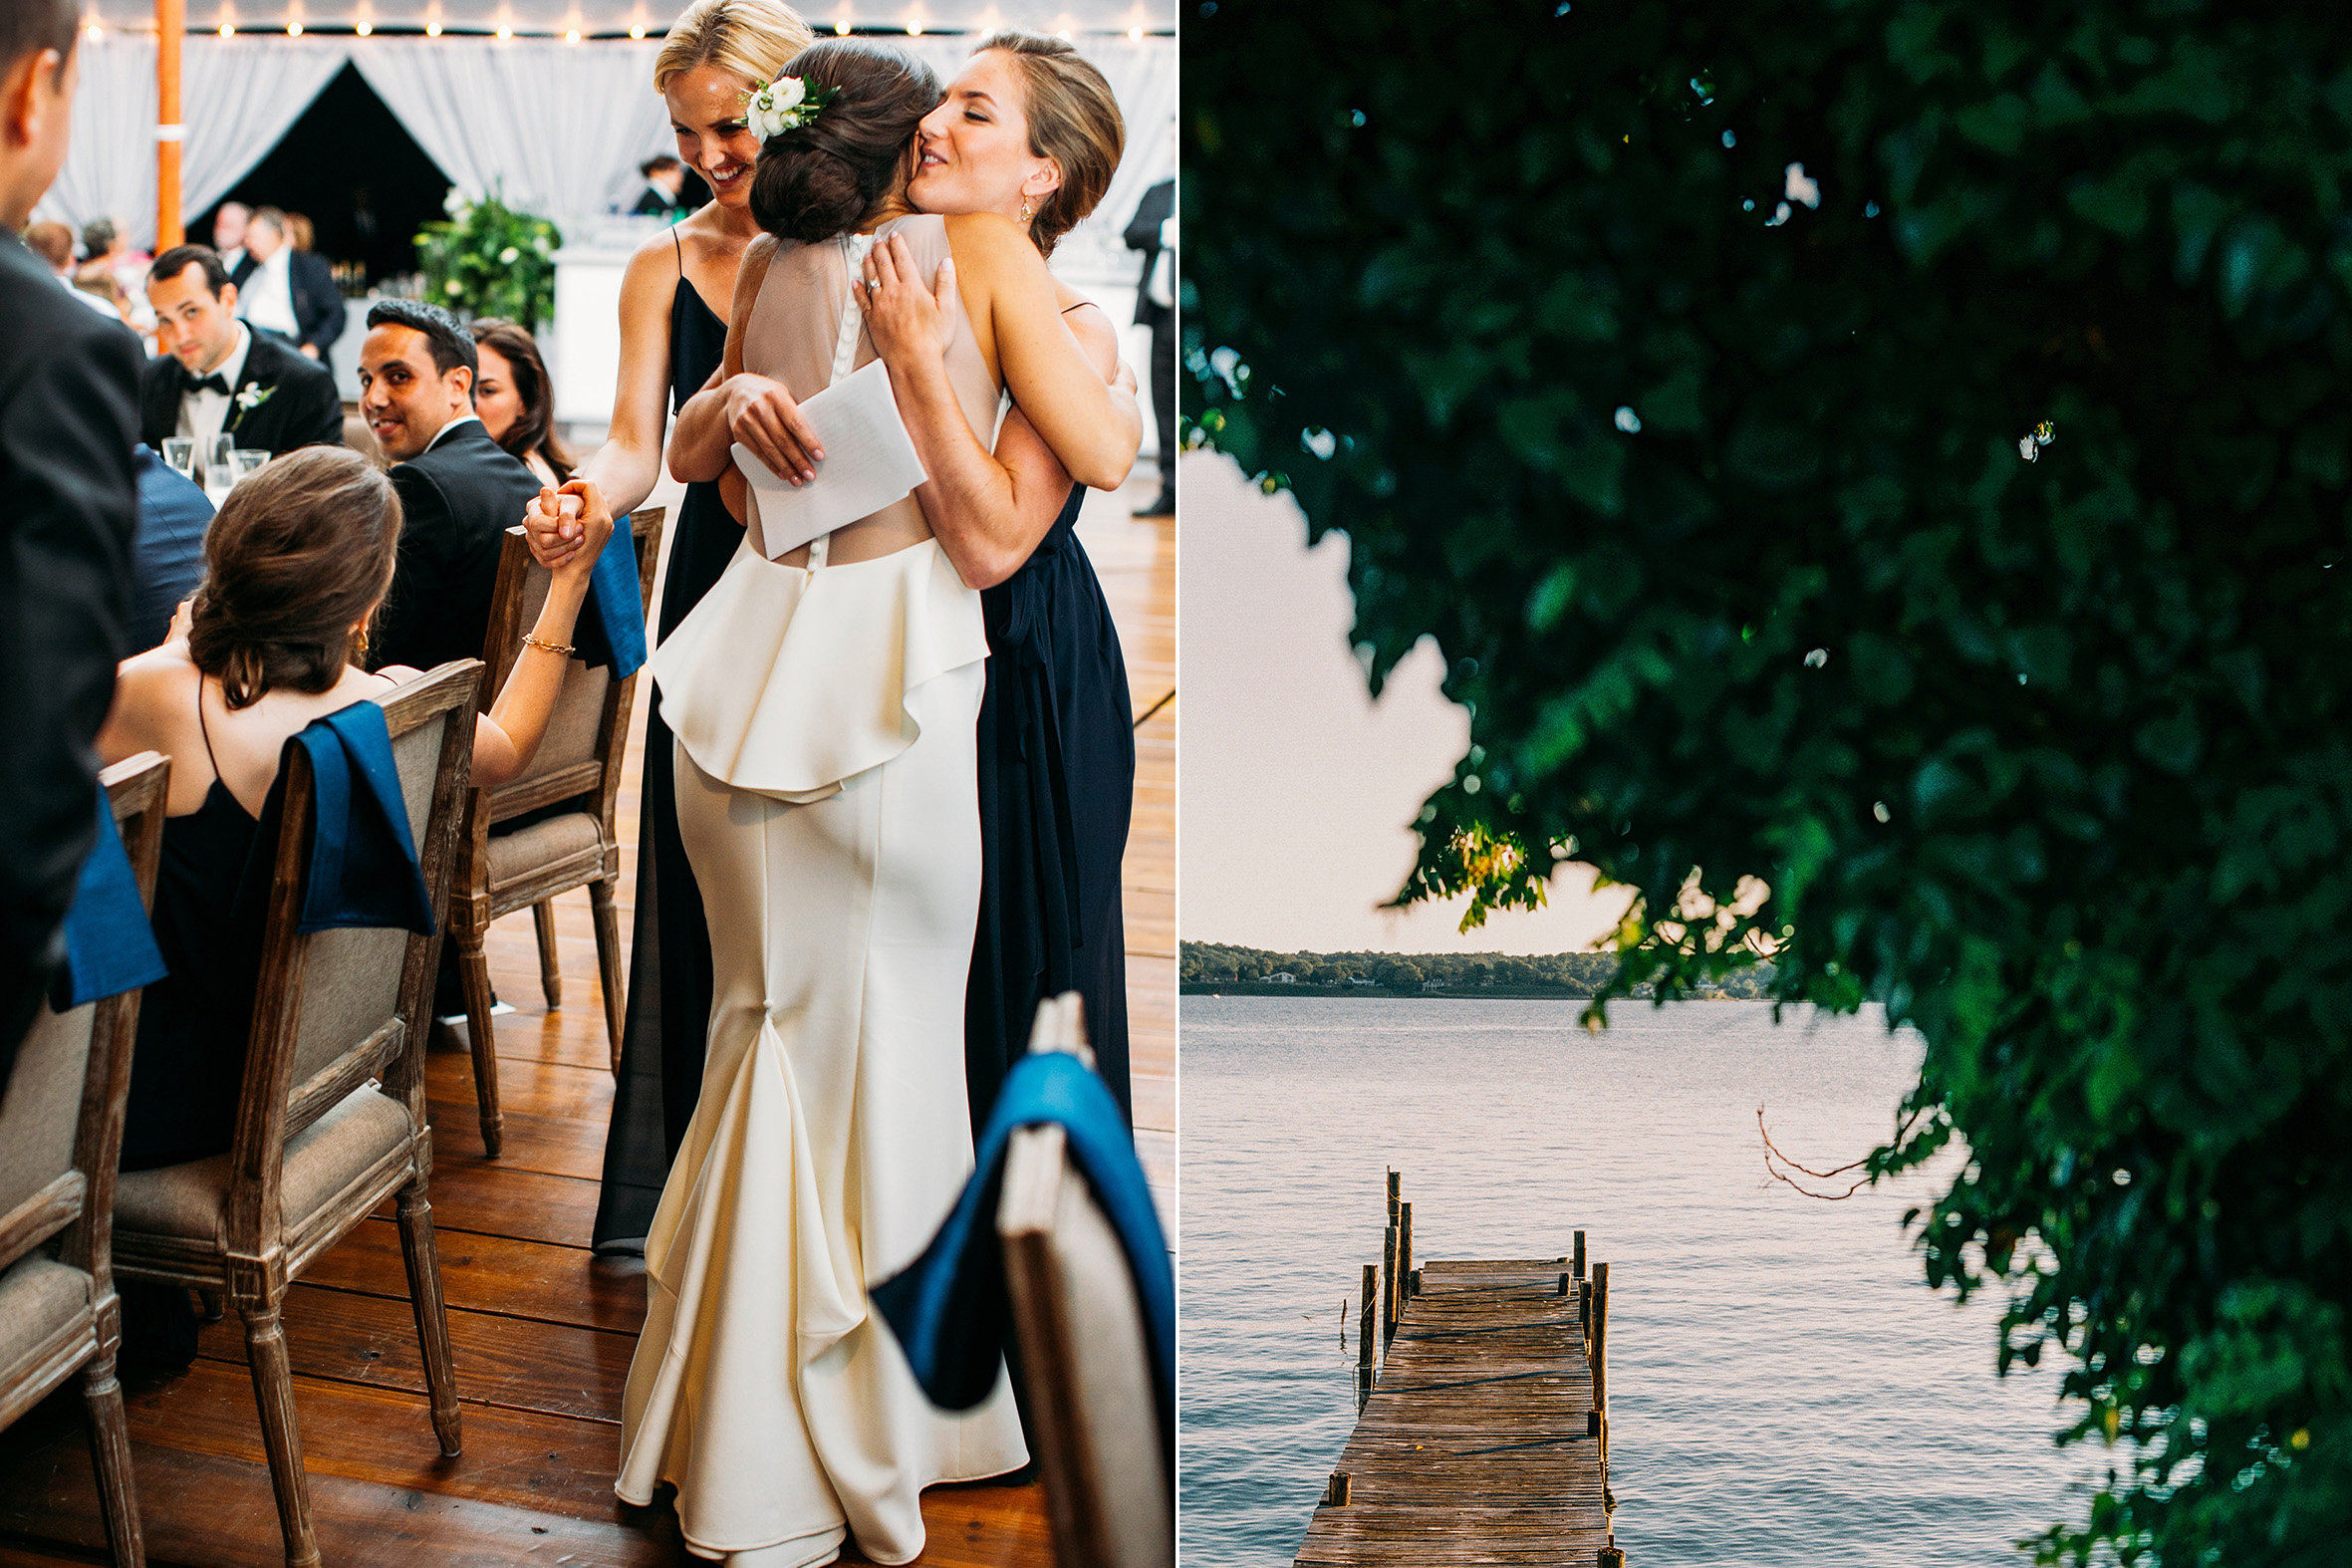 katie stoops photography-solomans island wedding57.jpg